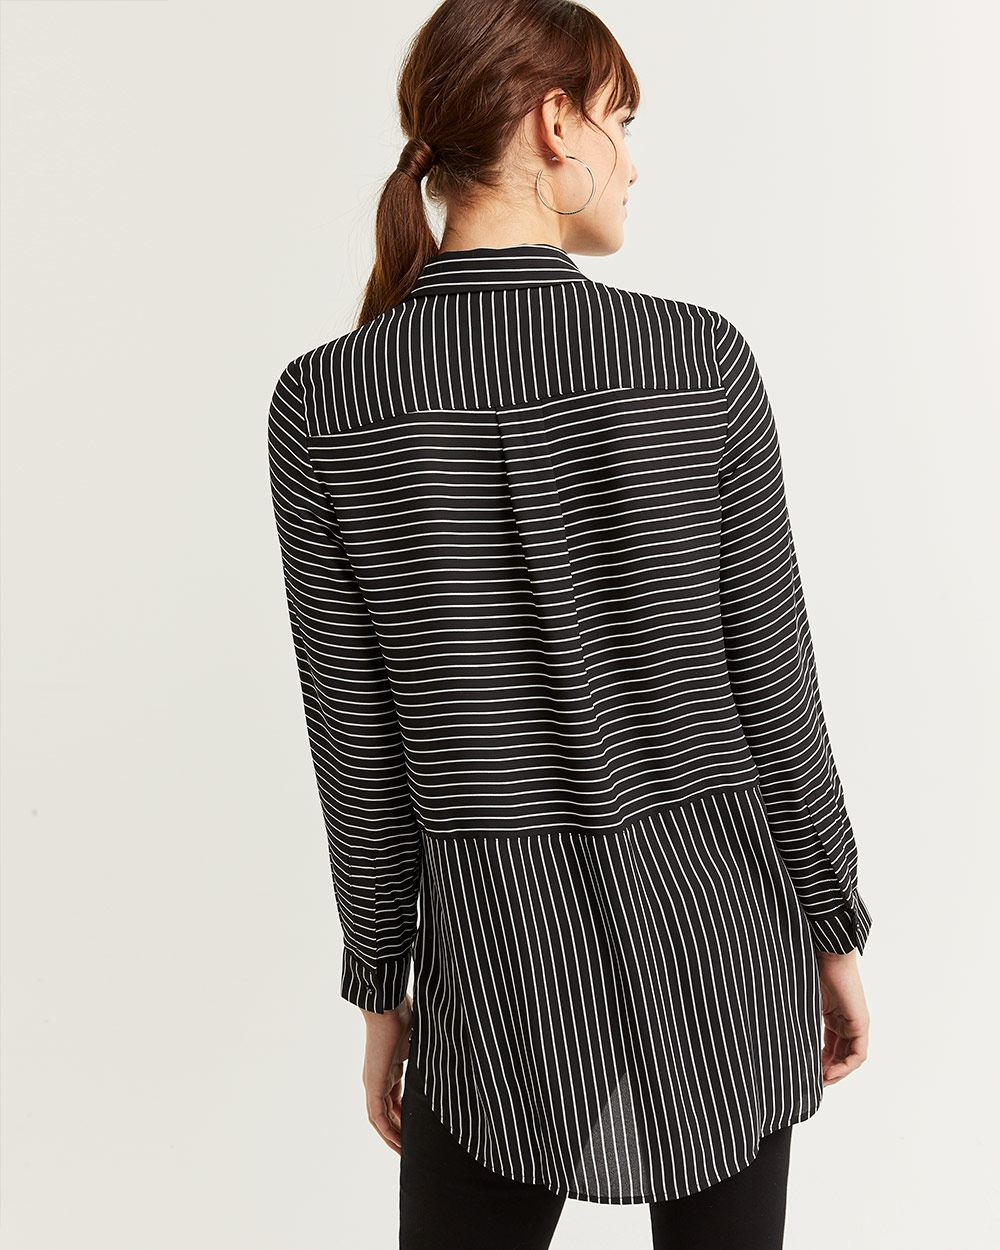 Striped Tunic Shirt with Patch Pockets